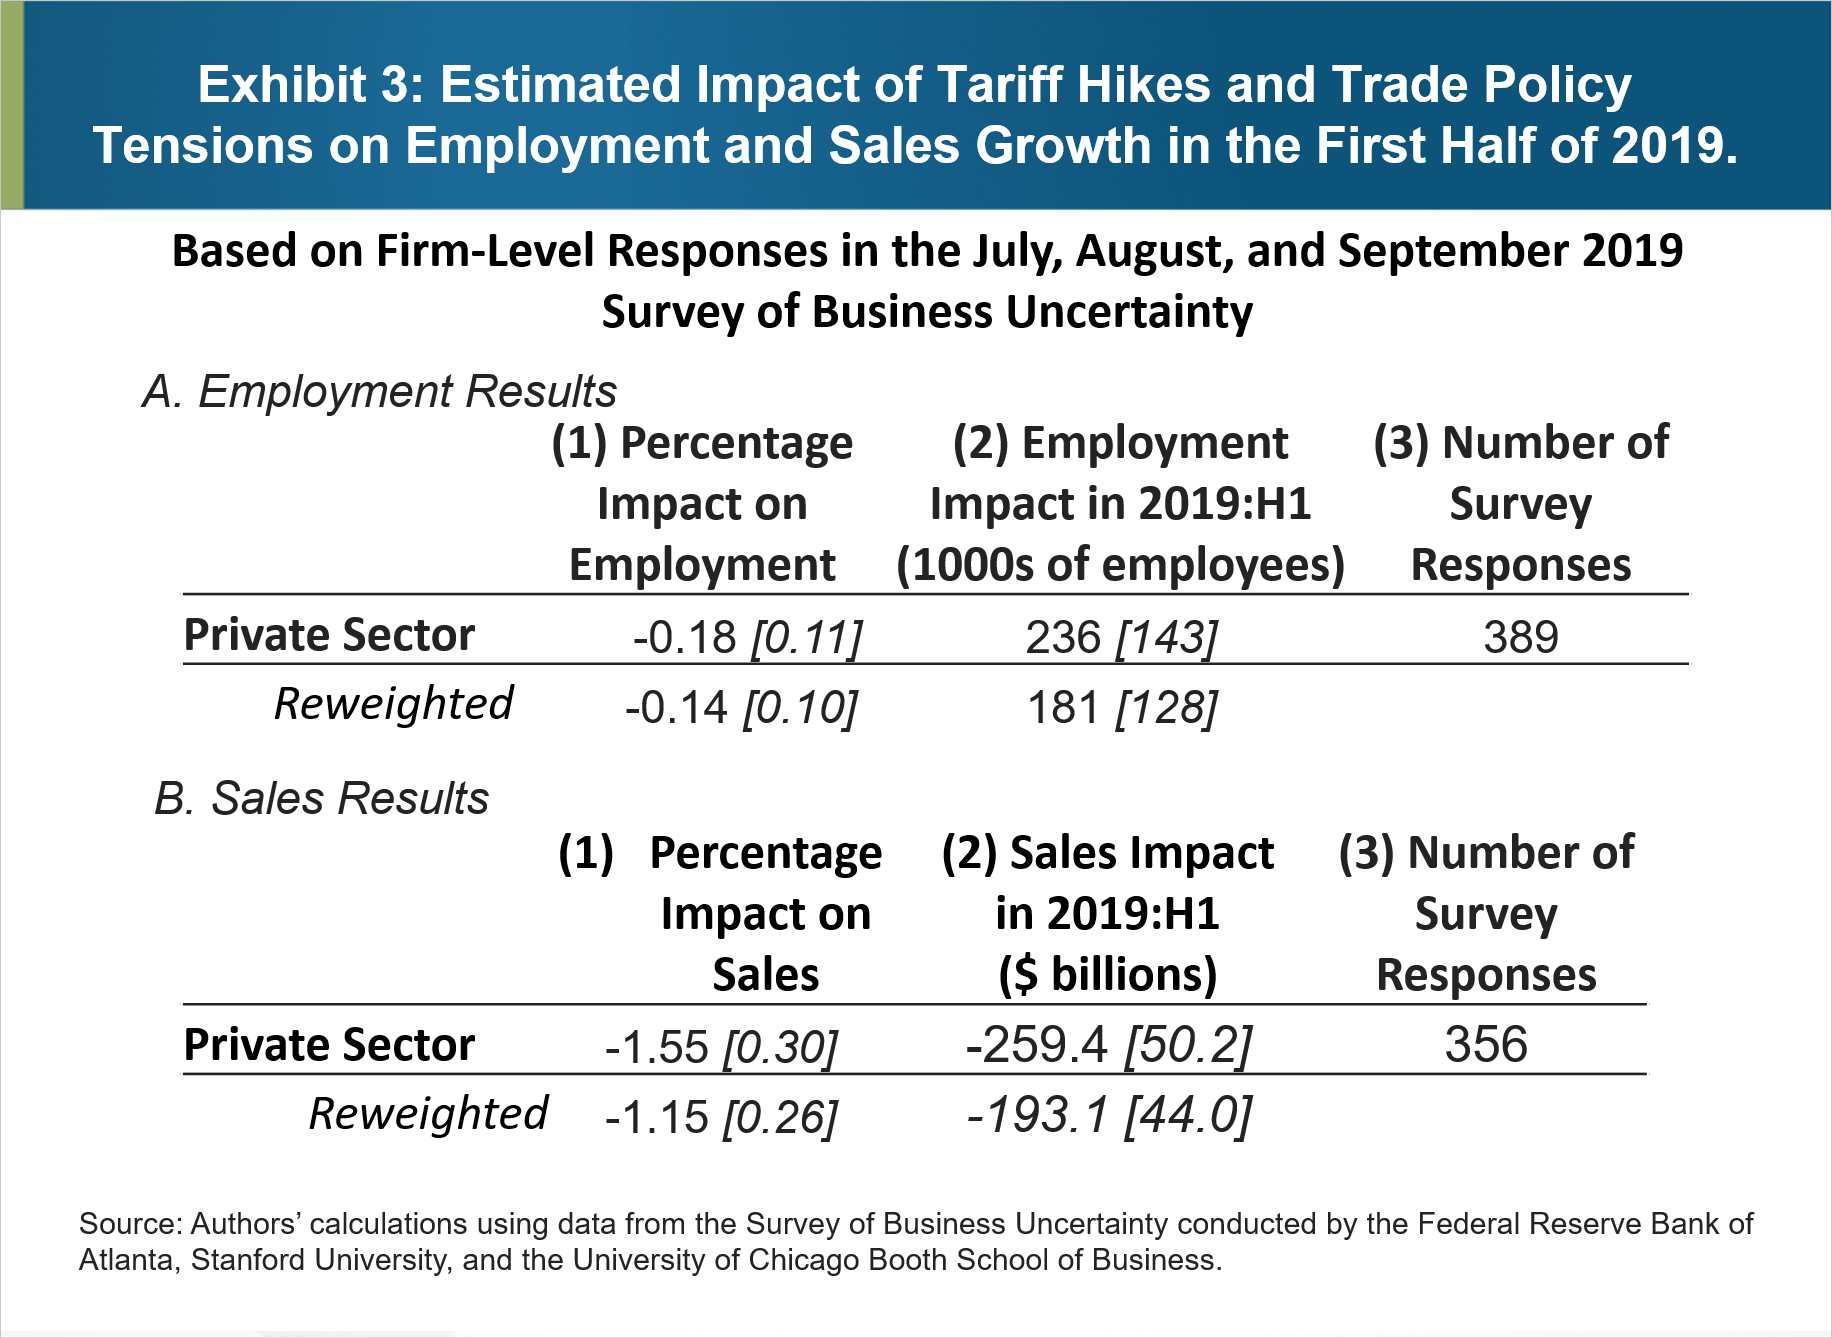 Exhibit 3: Estimated Impact of Tariff Hikes and Trade Policy Tensions on Employment and Sales Growth in the First Half of 2019